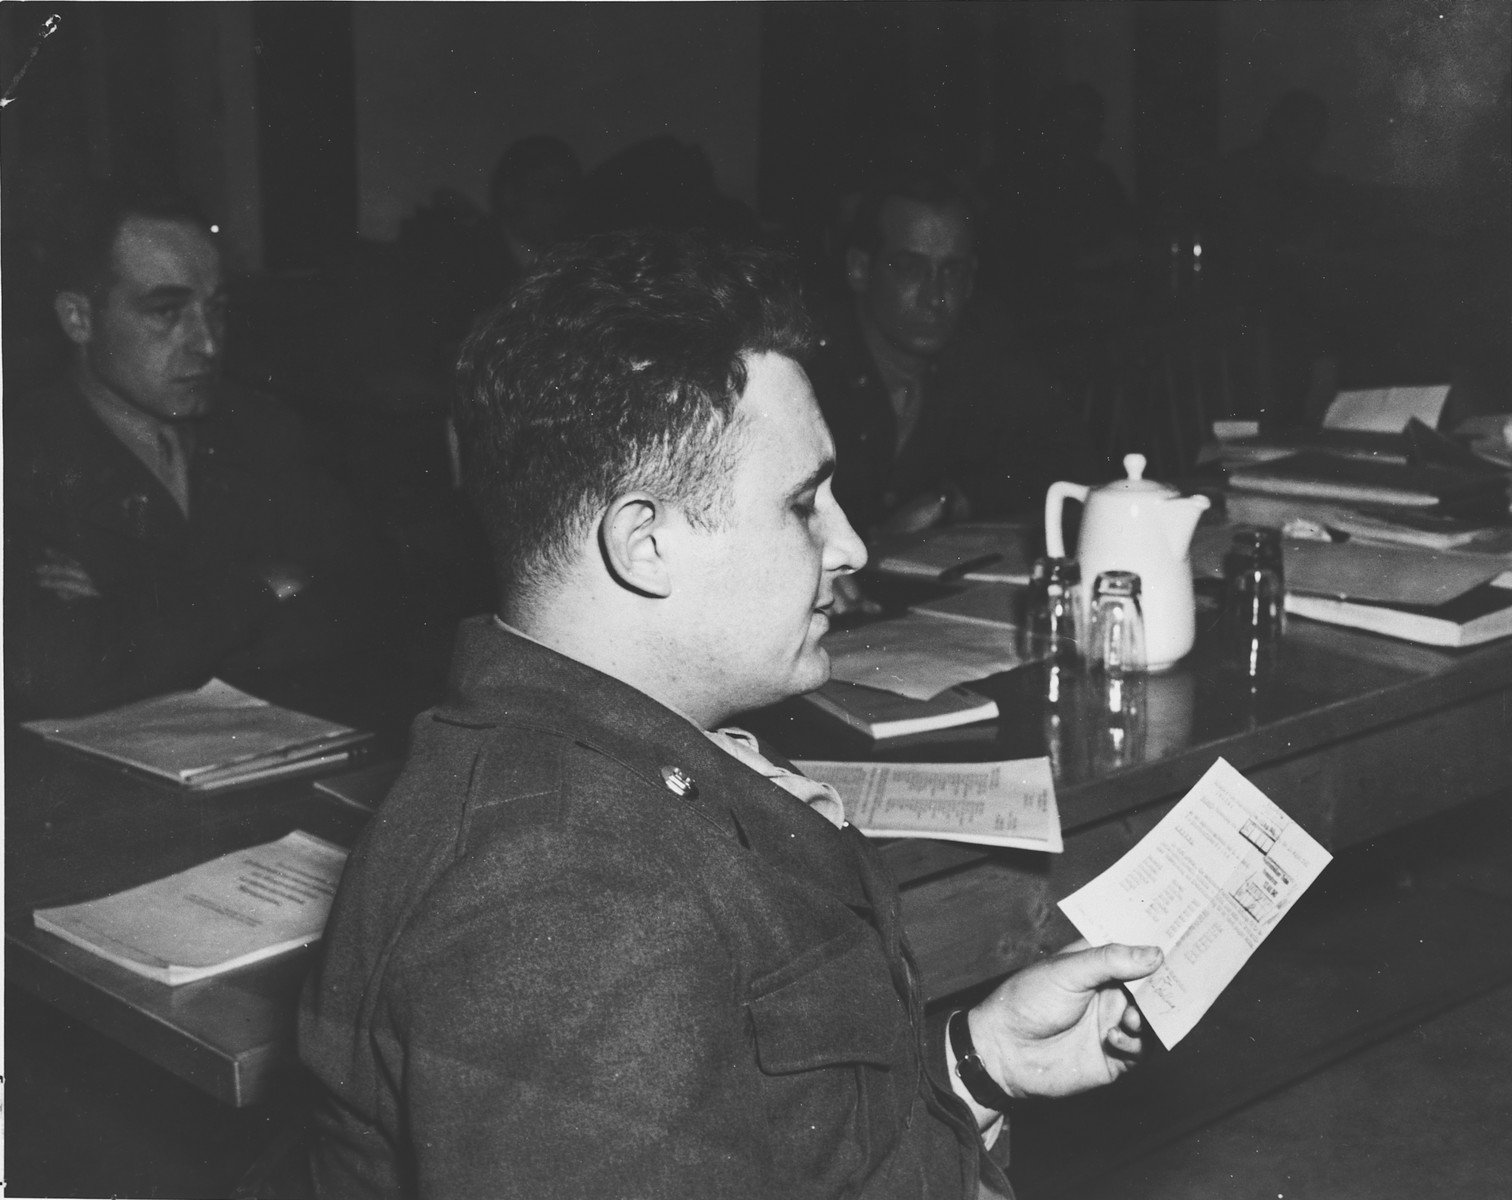 An American military lawyer examines a document during the Dachau war crimes trial.